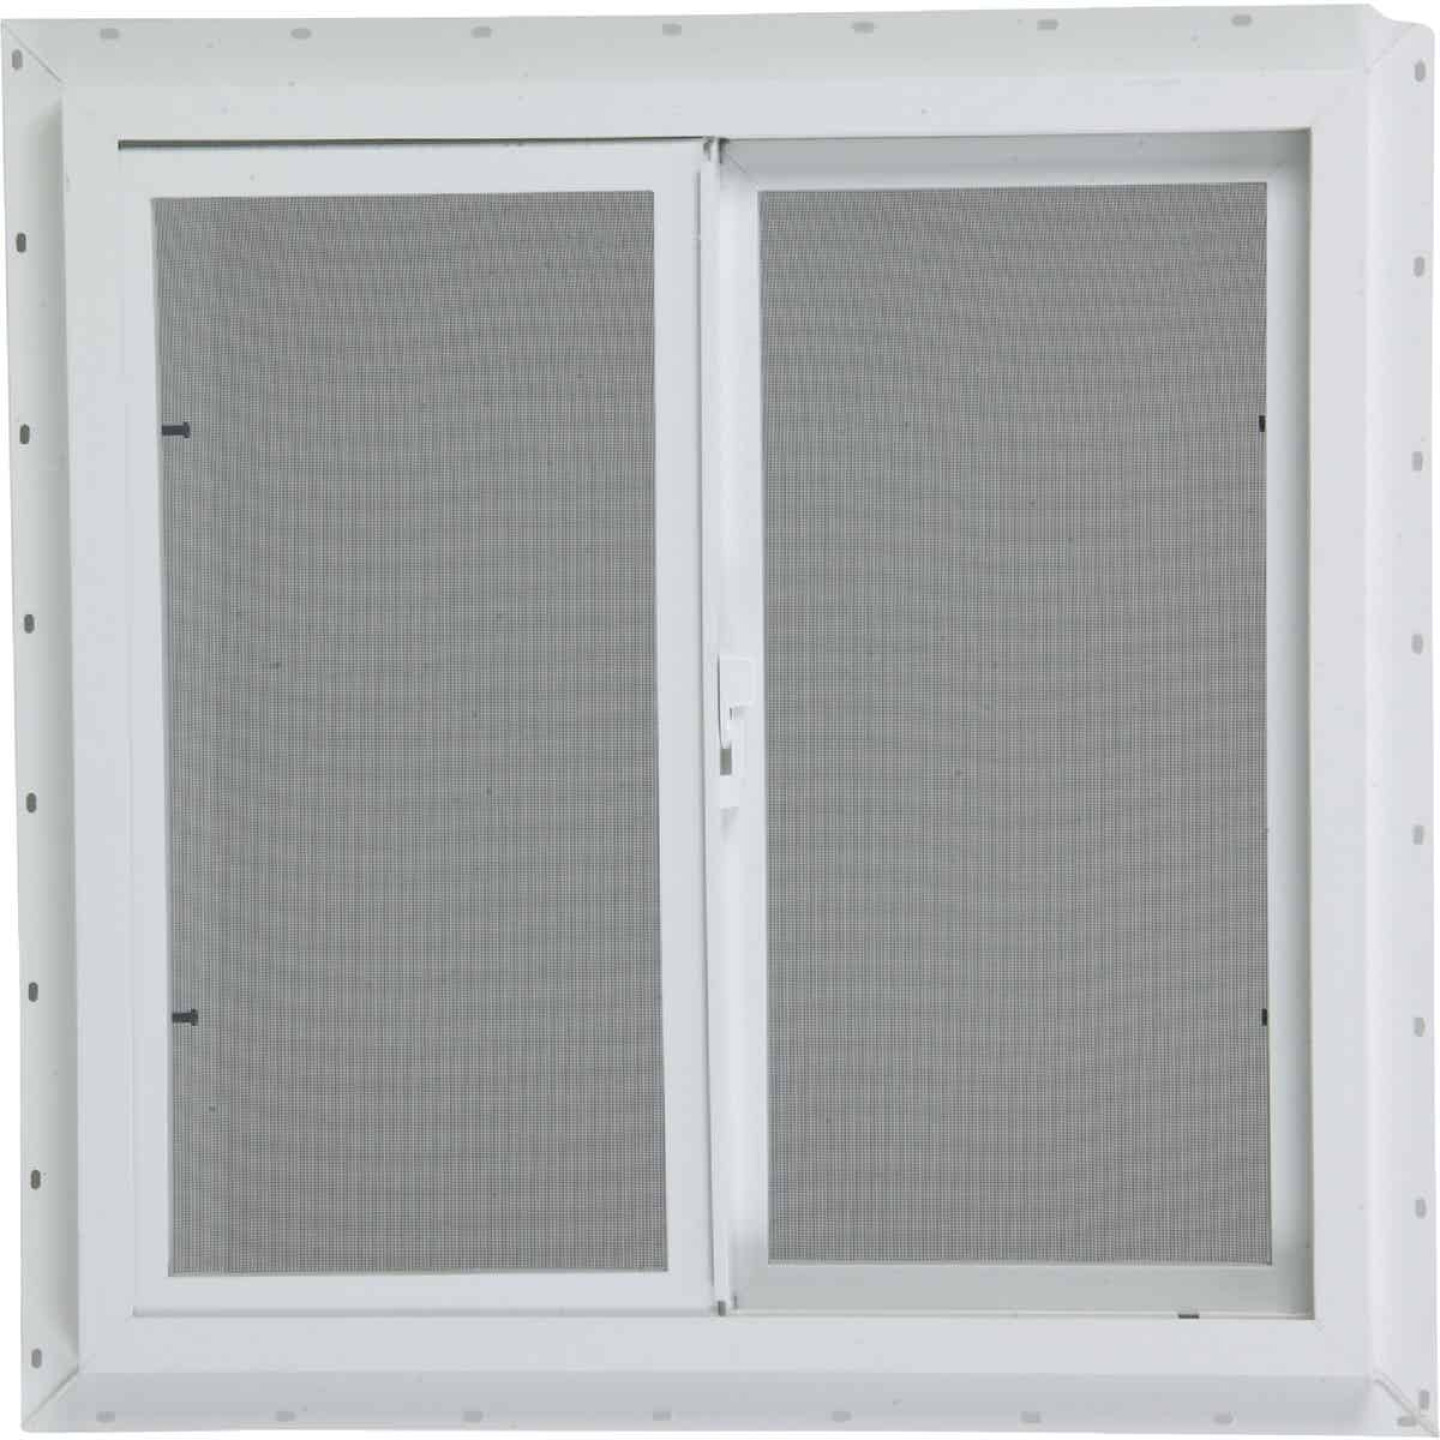 Northview 35-1/2 In. W. x 23-1/2 In. H. White PVC Single Glazed Utility Sliding Window Image 2